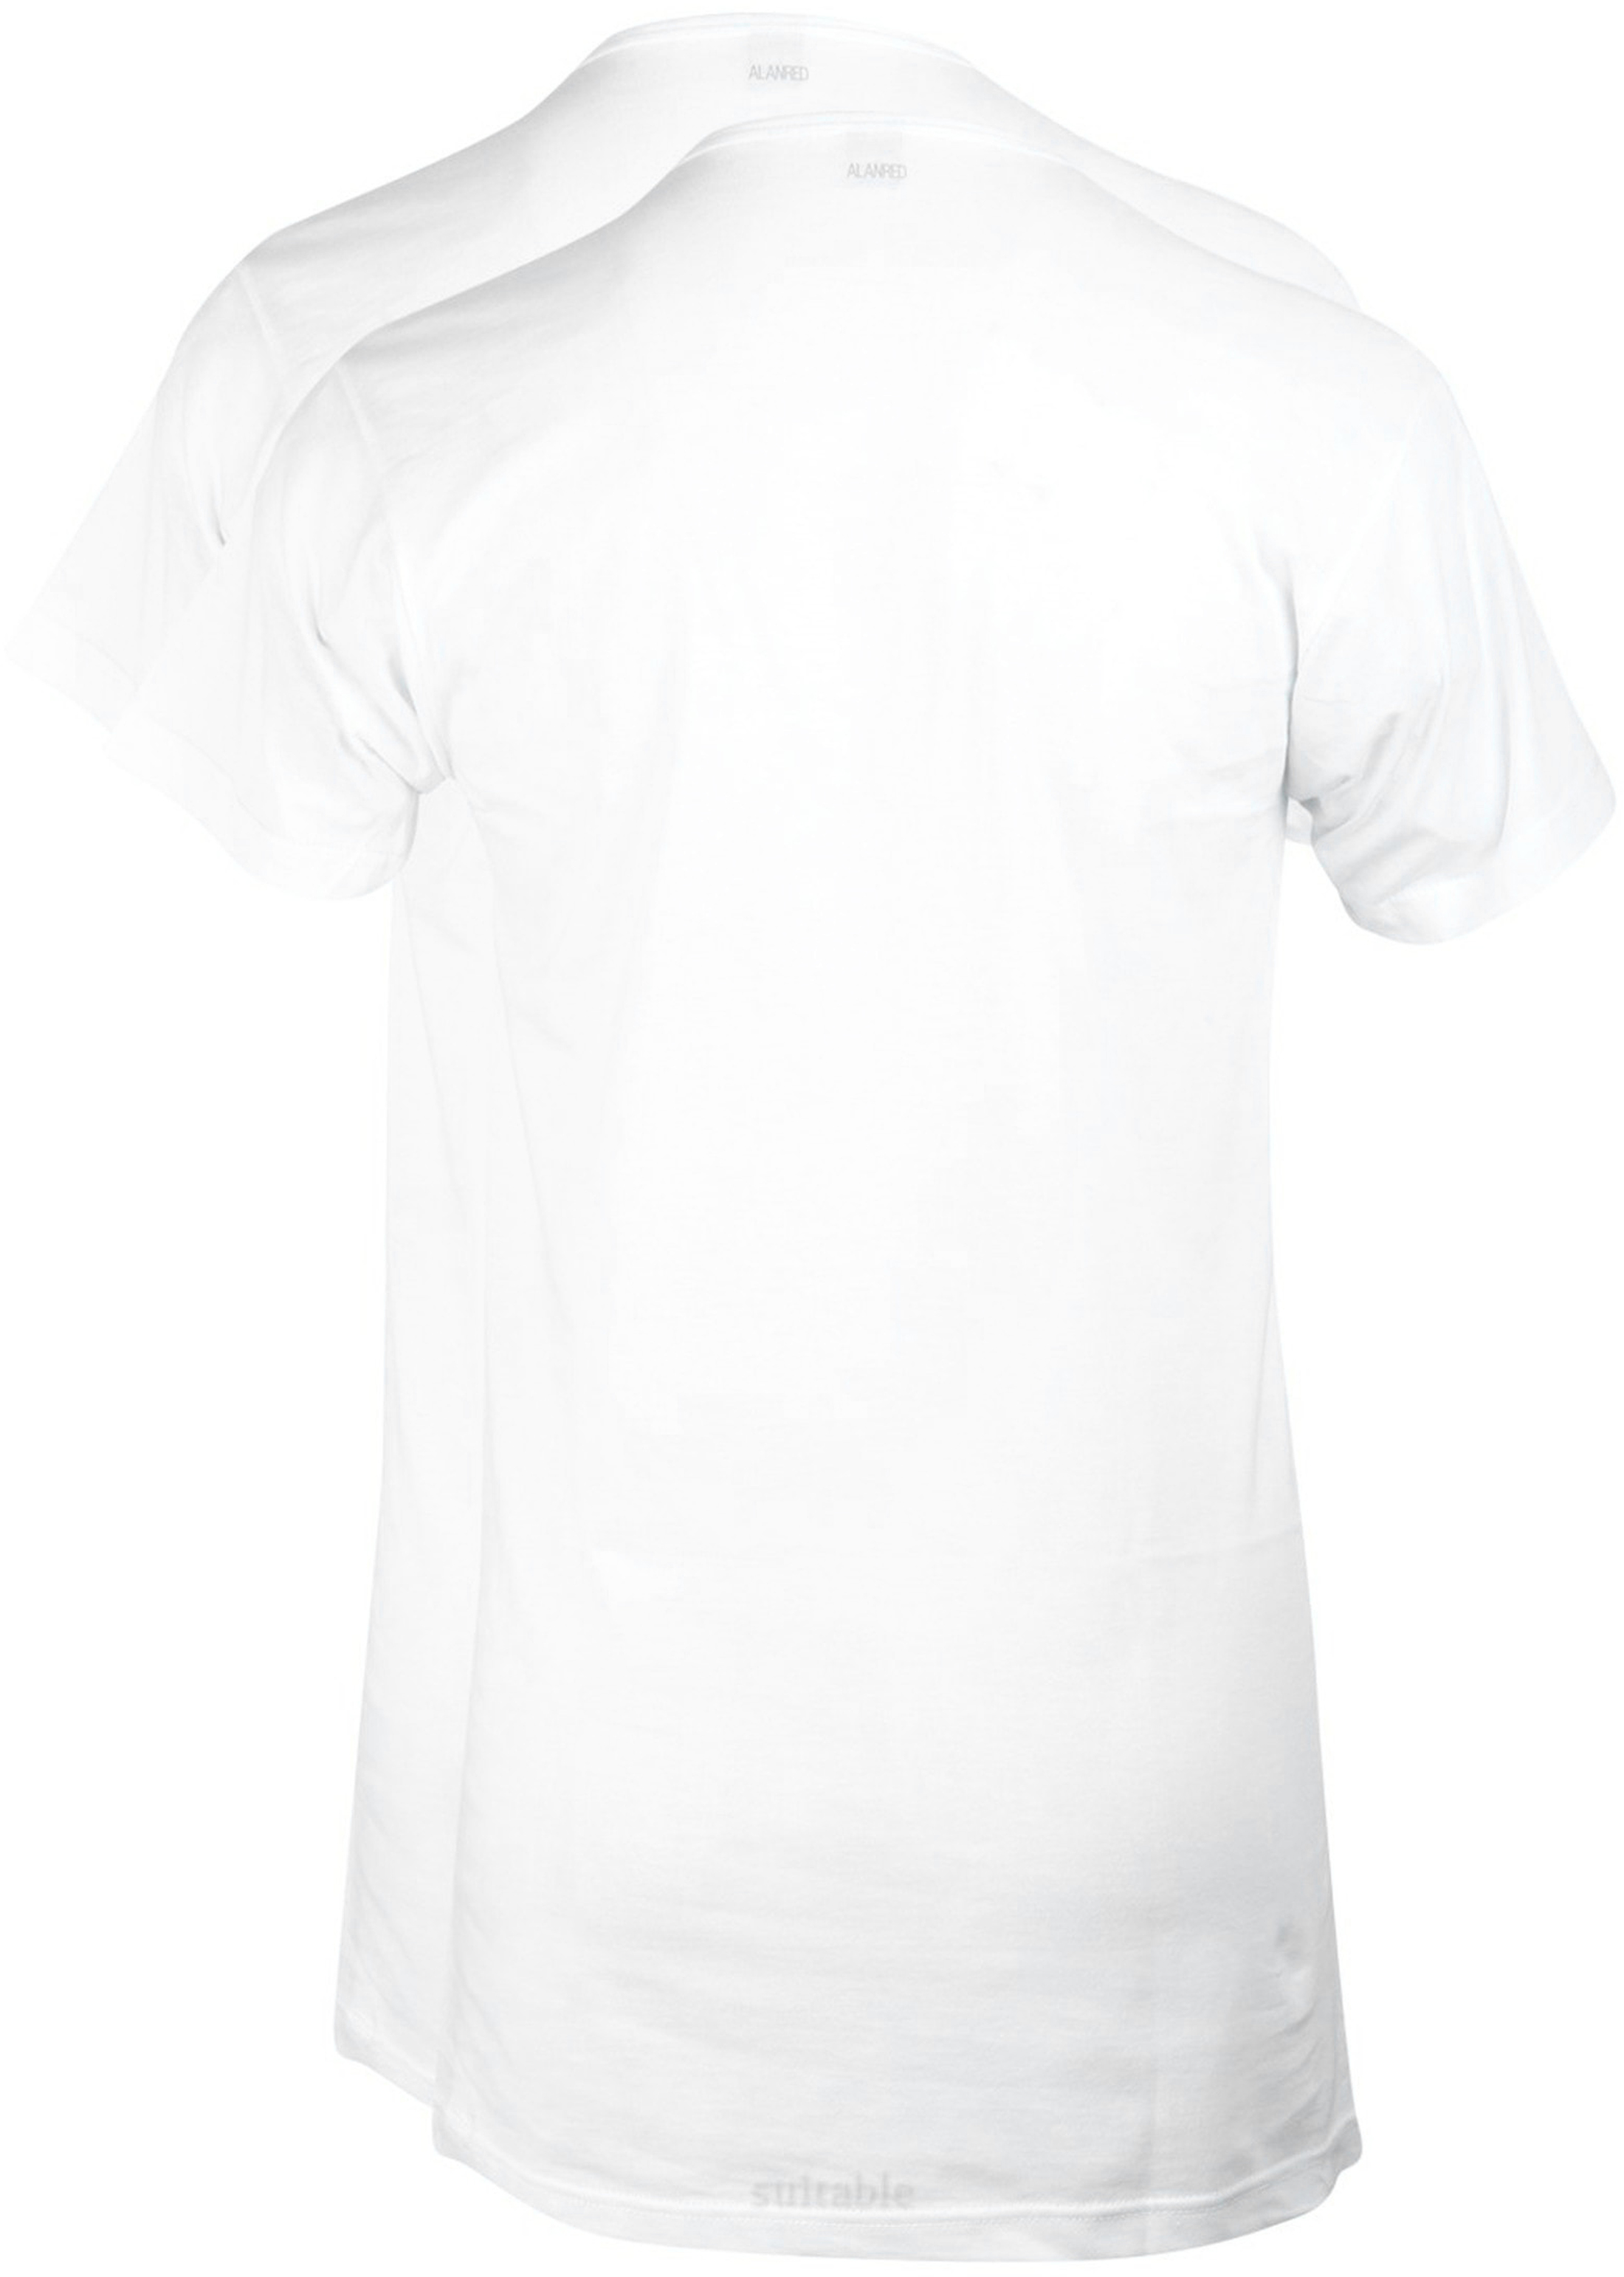 Alan Red Vermont Extra Long T-shirts White 2-Pack foto 2